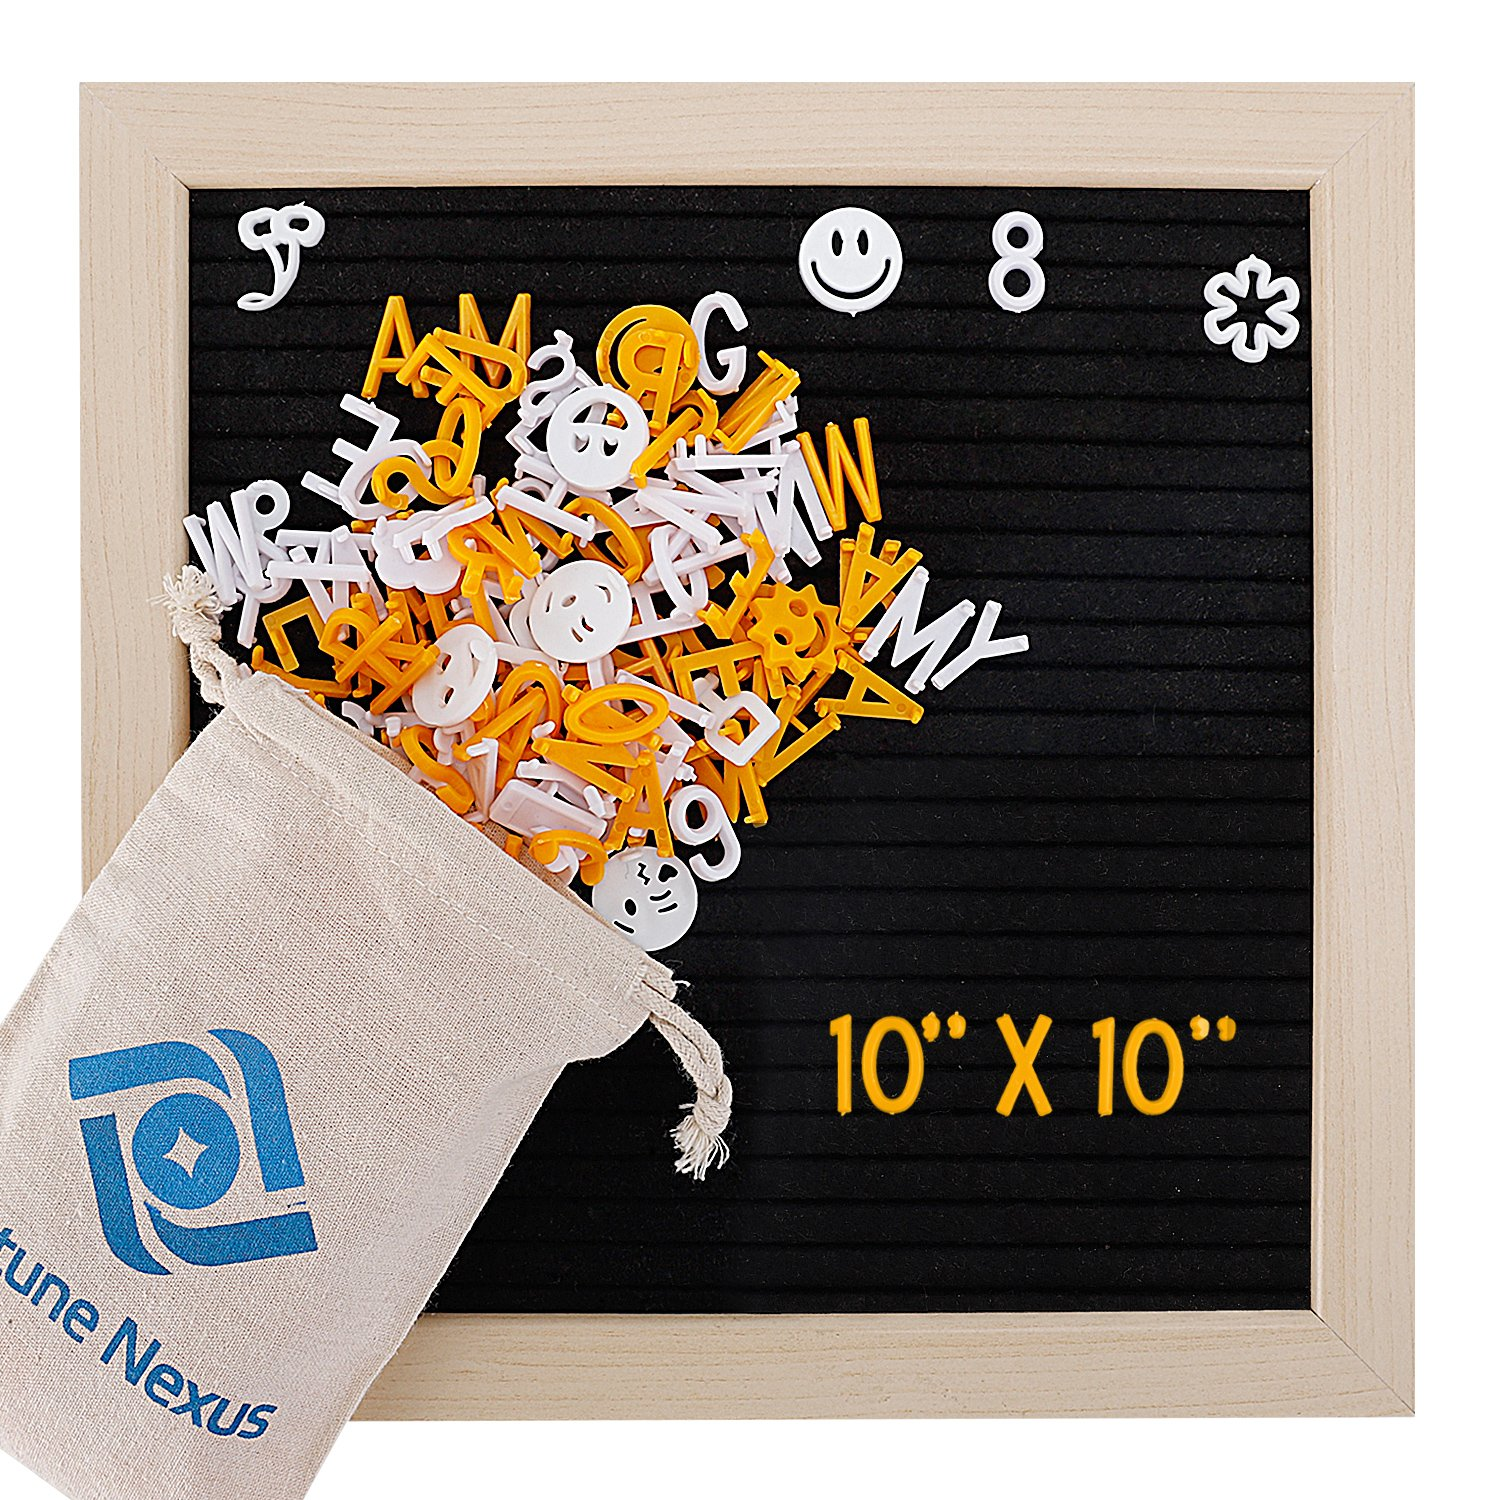 Black Felt Letter Board 10x10 inches. Changeable Letter Boards Include 380 White & Orange Plastic Characters & Oak Frame with Back Stand & Mounting Hook & Canvas Bag